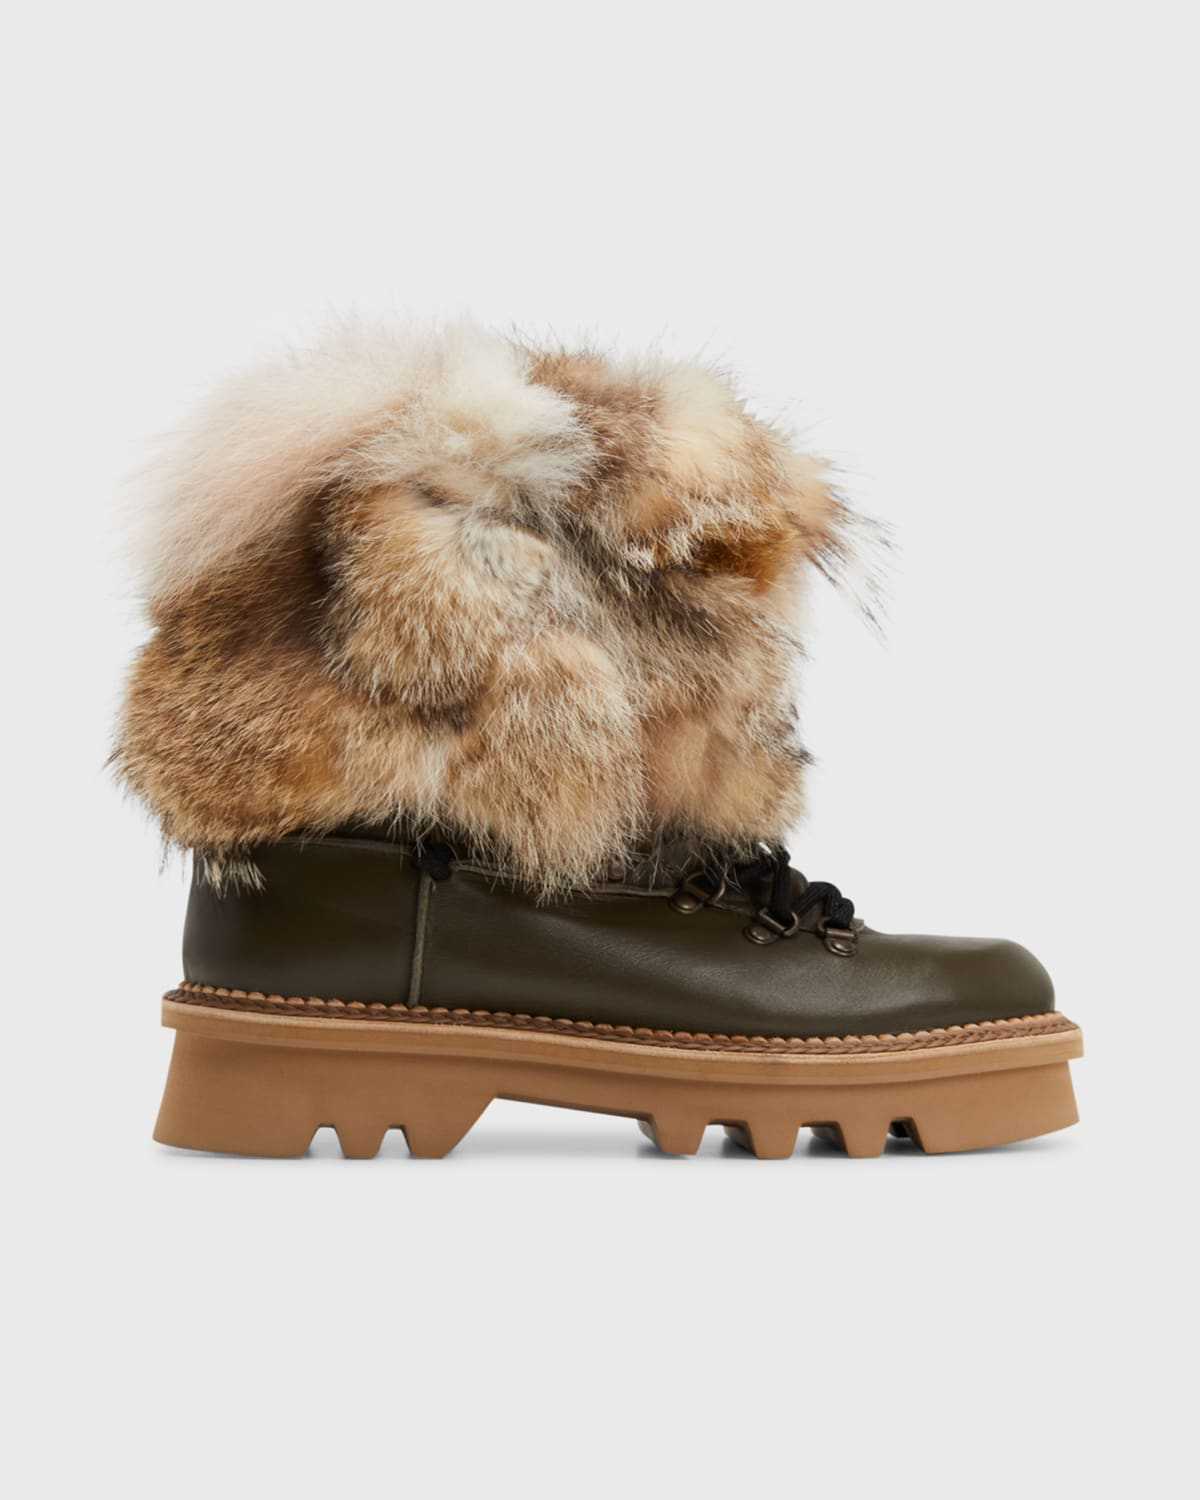 Seicento Shearling Lace-up Snow Booties